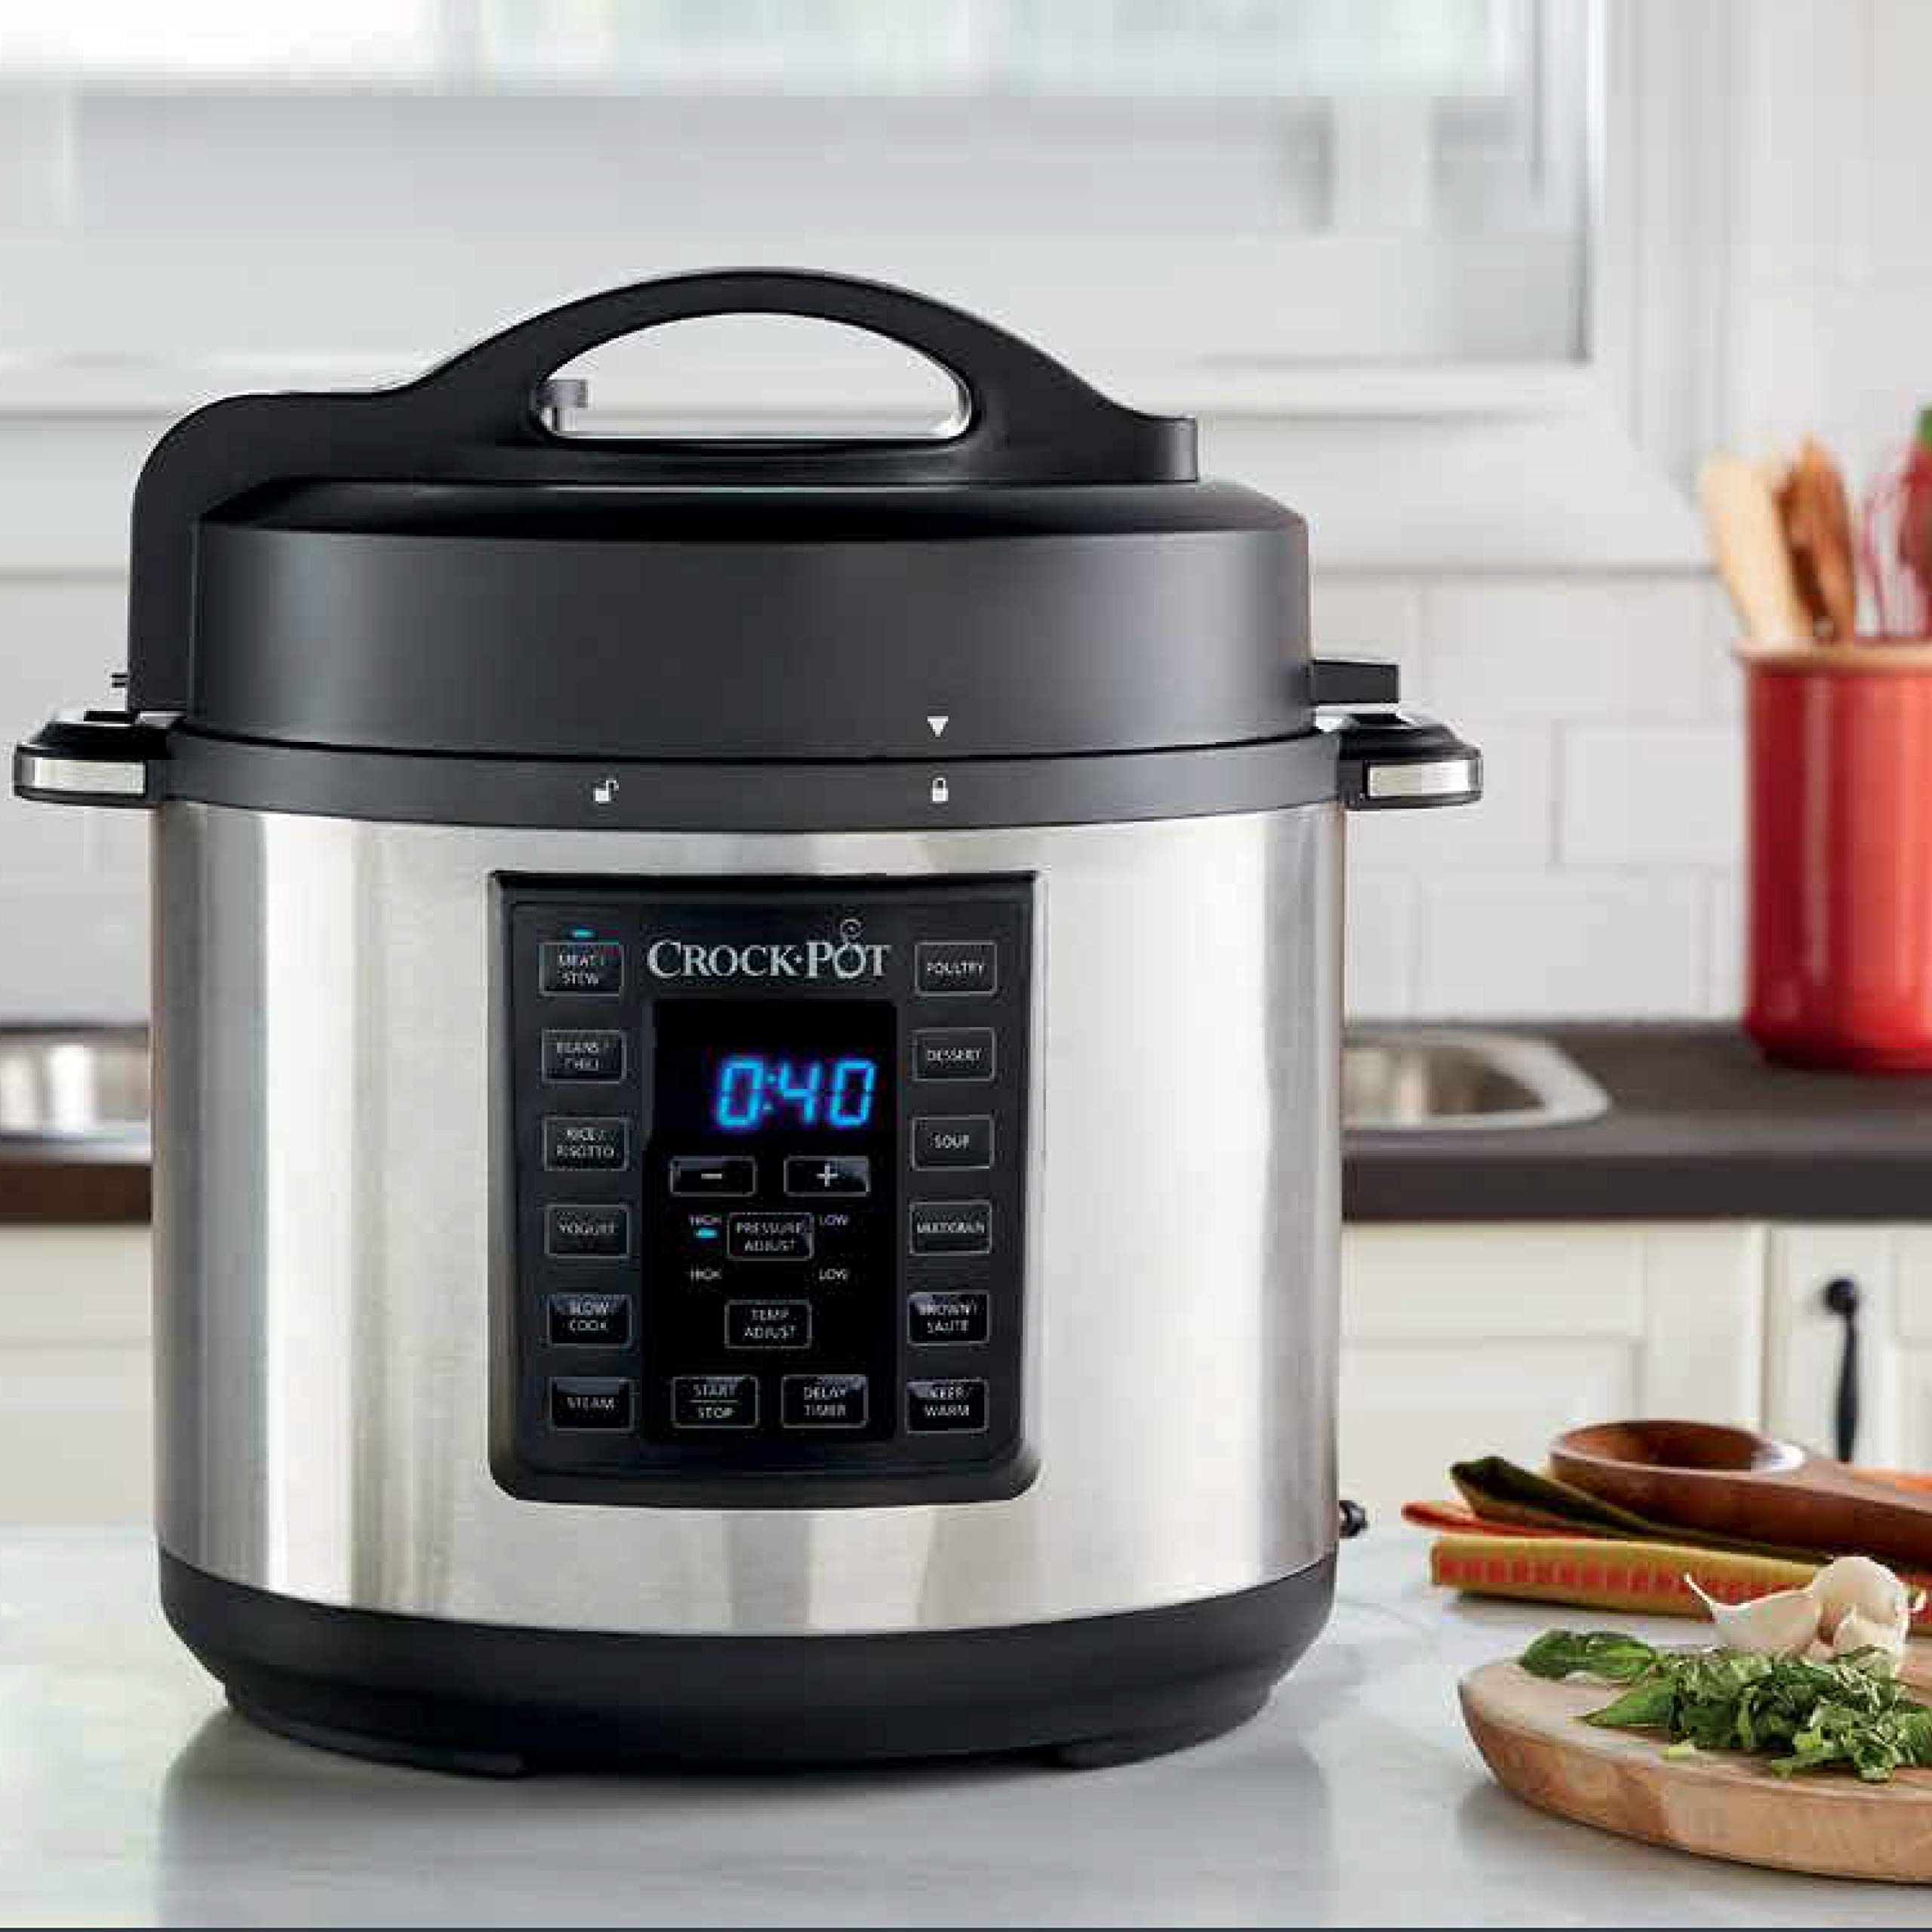 Crock-Pot 6 Qt 8-in-1 Multi-Use Express Crock Programmable Slow Cooker, Pressure Cooker, Sauté, and Steamer, Stainless Steel (SCCPPC600-V1) by Crock-Pot (Image #6)